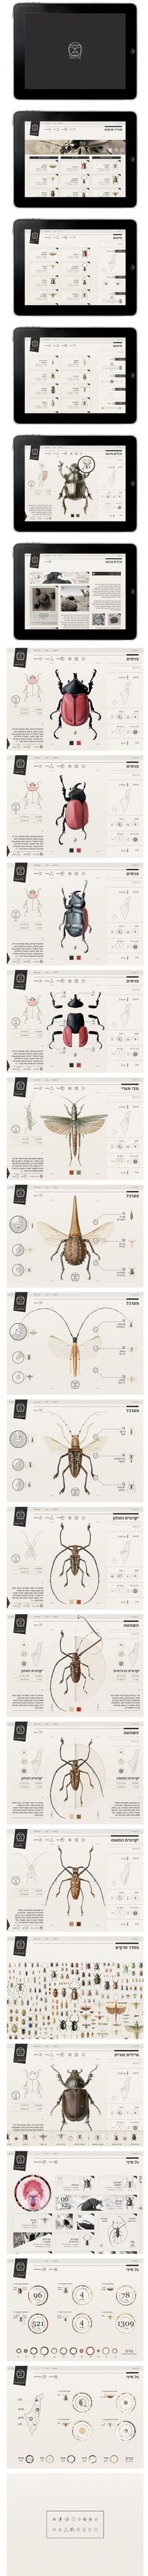 Interactive insect field guide